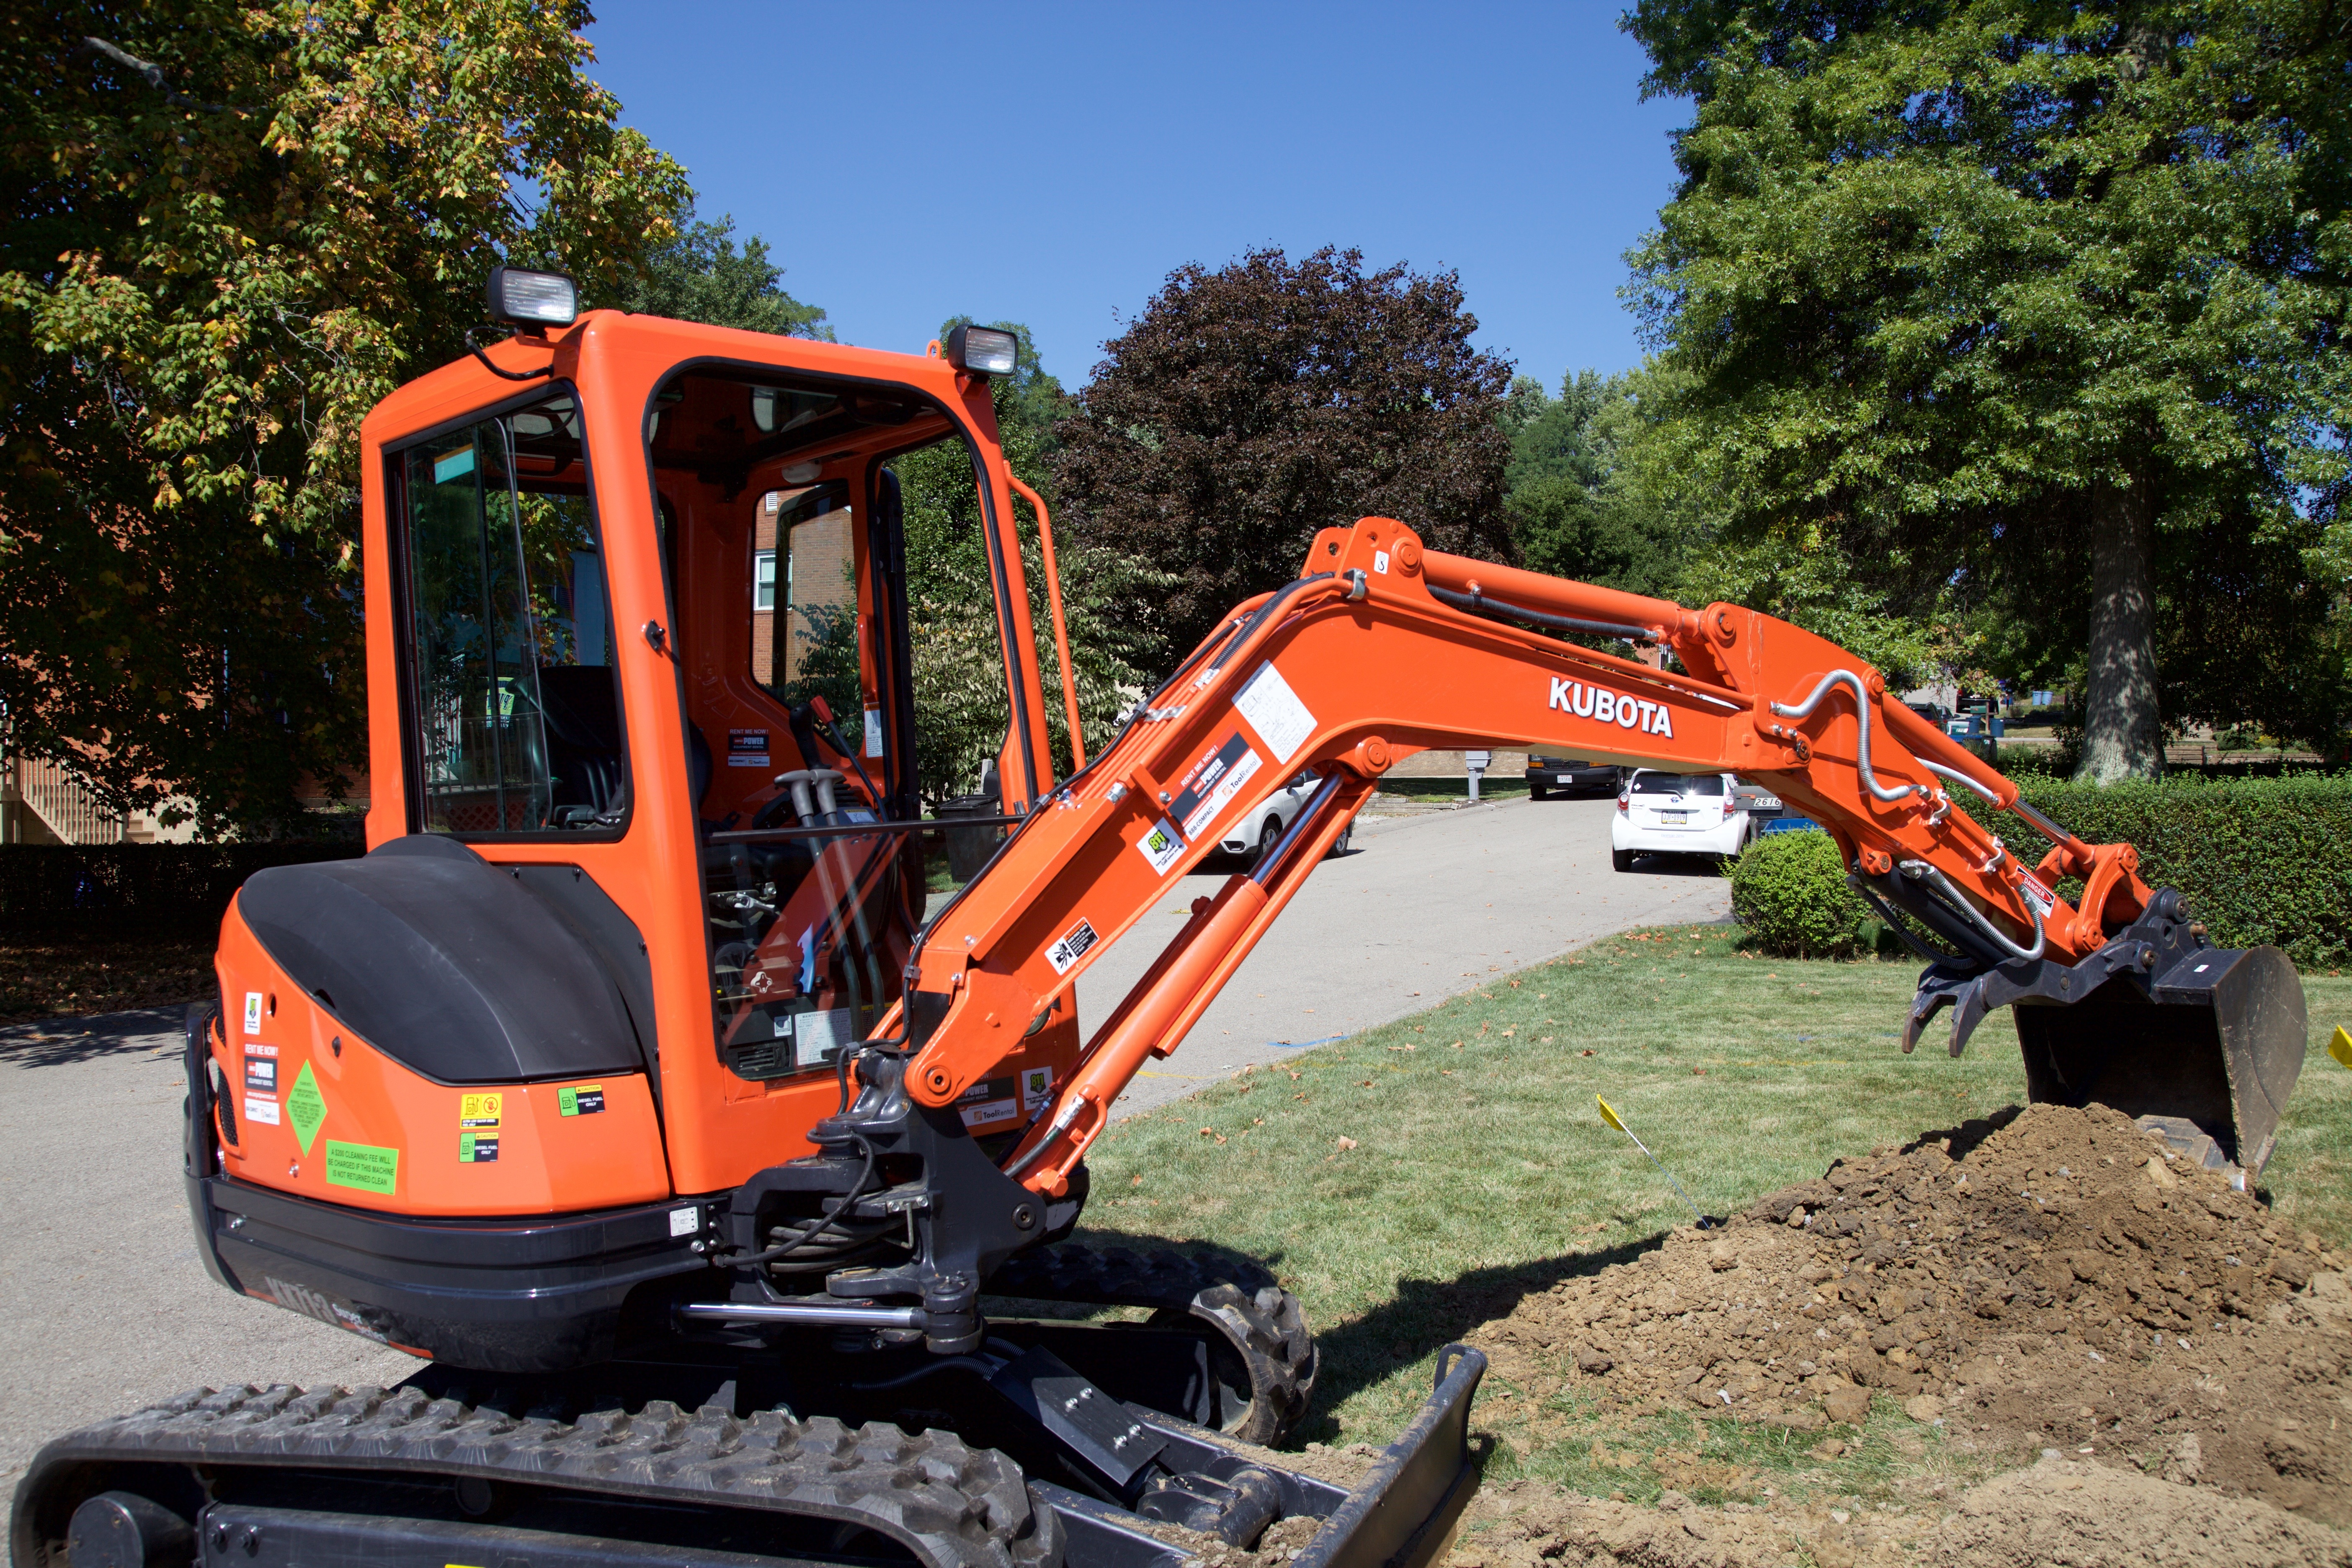 Kubota Mini Excavator In Action_IMG_1004.jpg